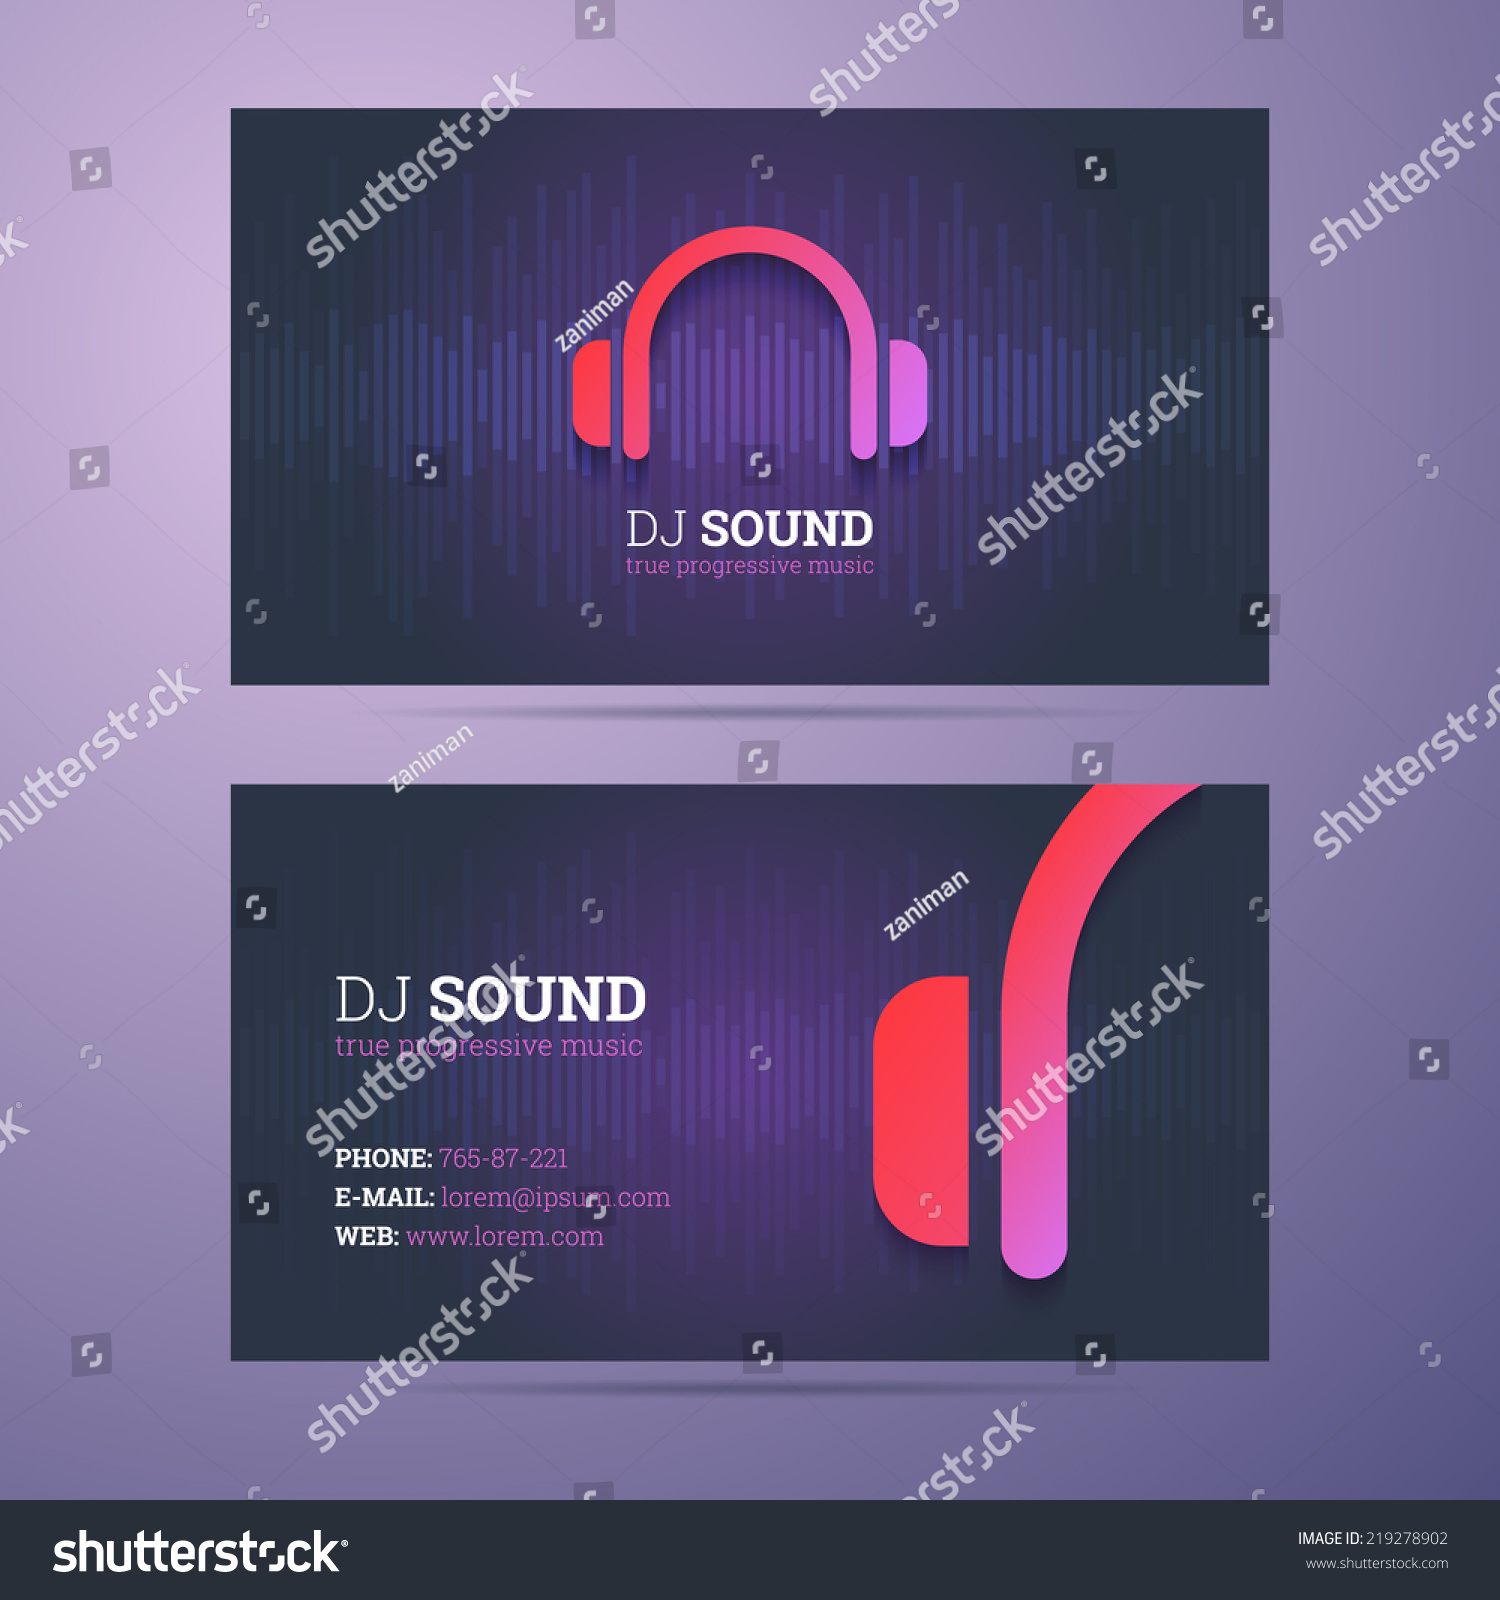 Business Card Template Dj Music Business Stock Vector